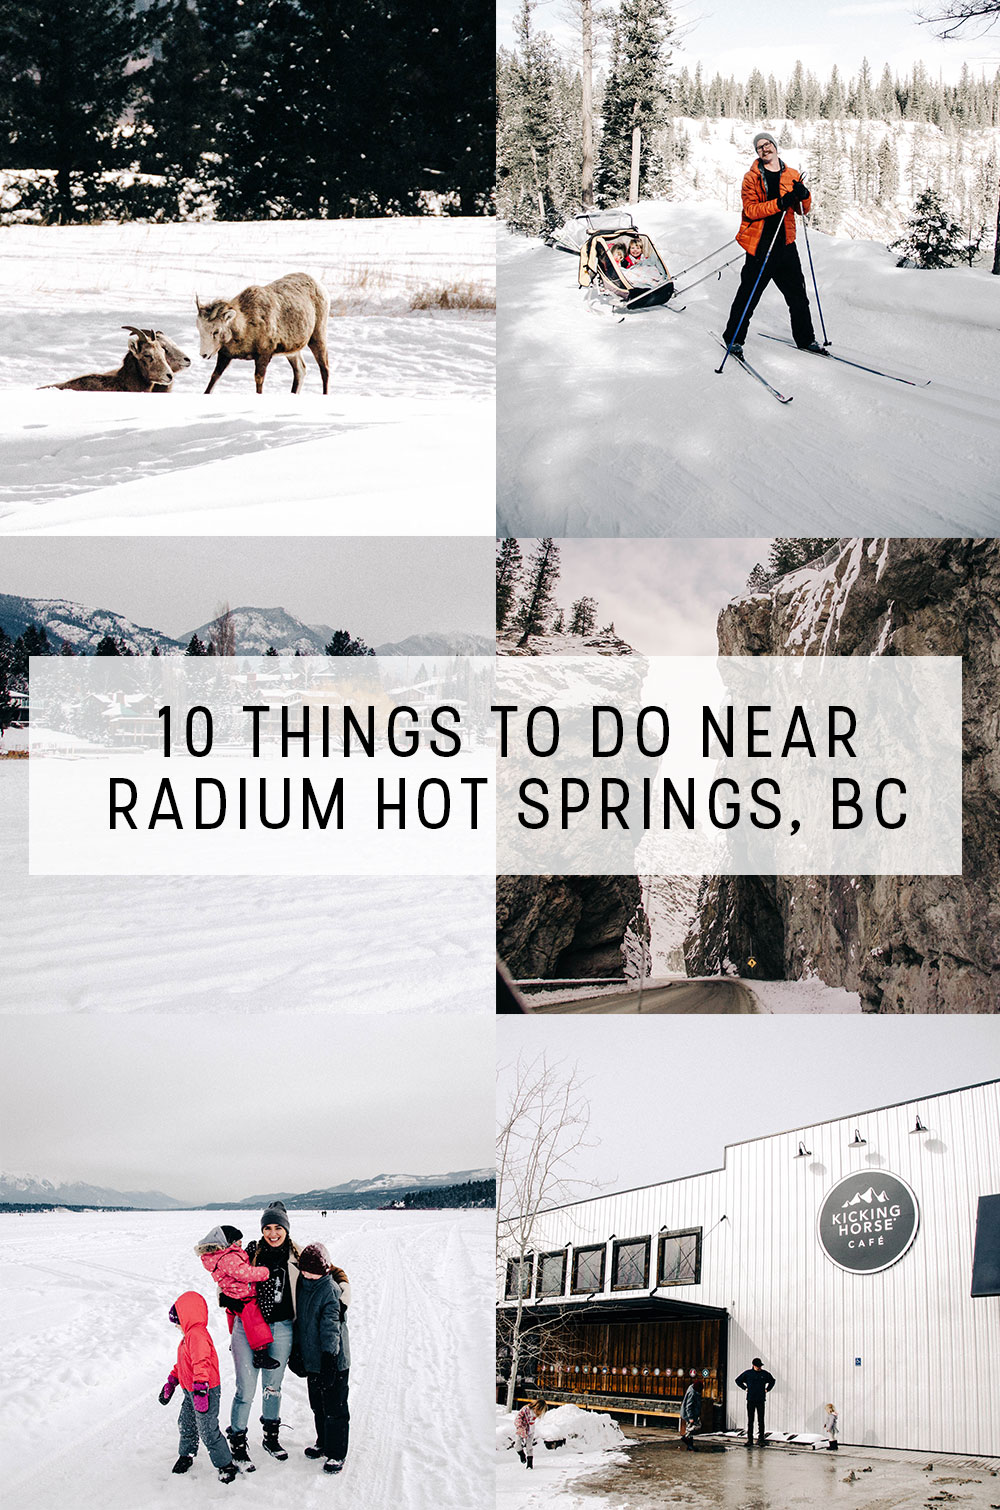 10 Things to do Near Radium Hot Springs | Big Horn Meadows Resort, Nipika Cross Country Skiing, Radium Hot Springs Pools, Windermere Lake, Kicking Horse Coffee, Big Horn Sheep Sightings